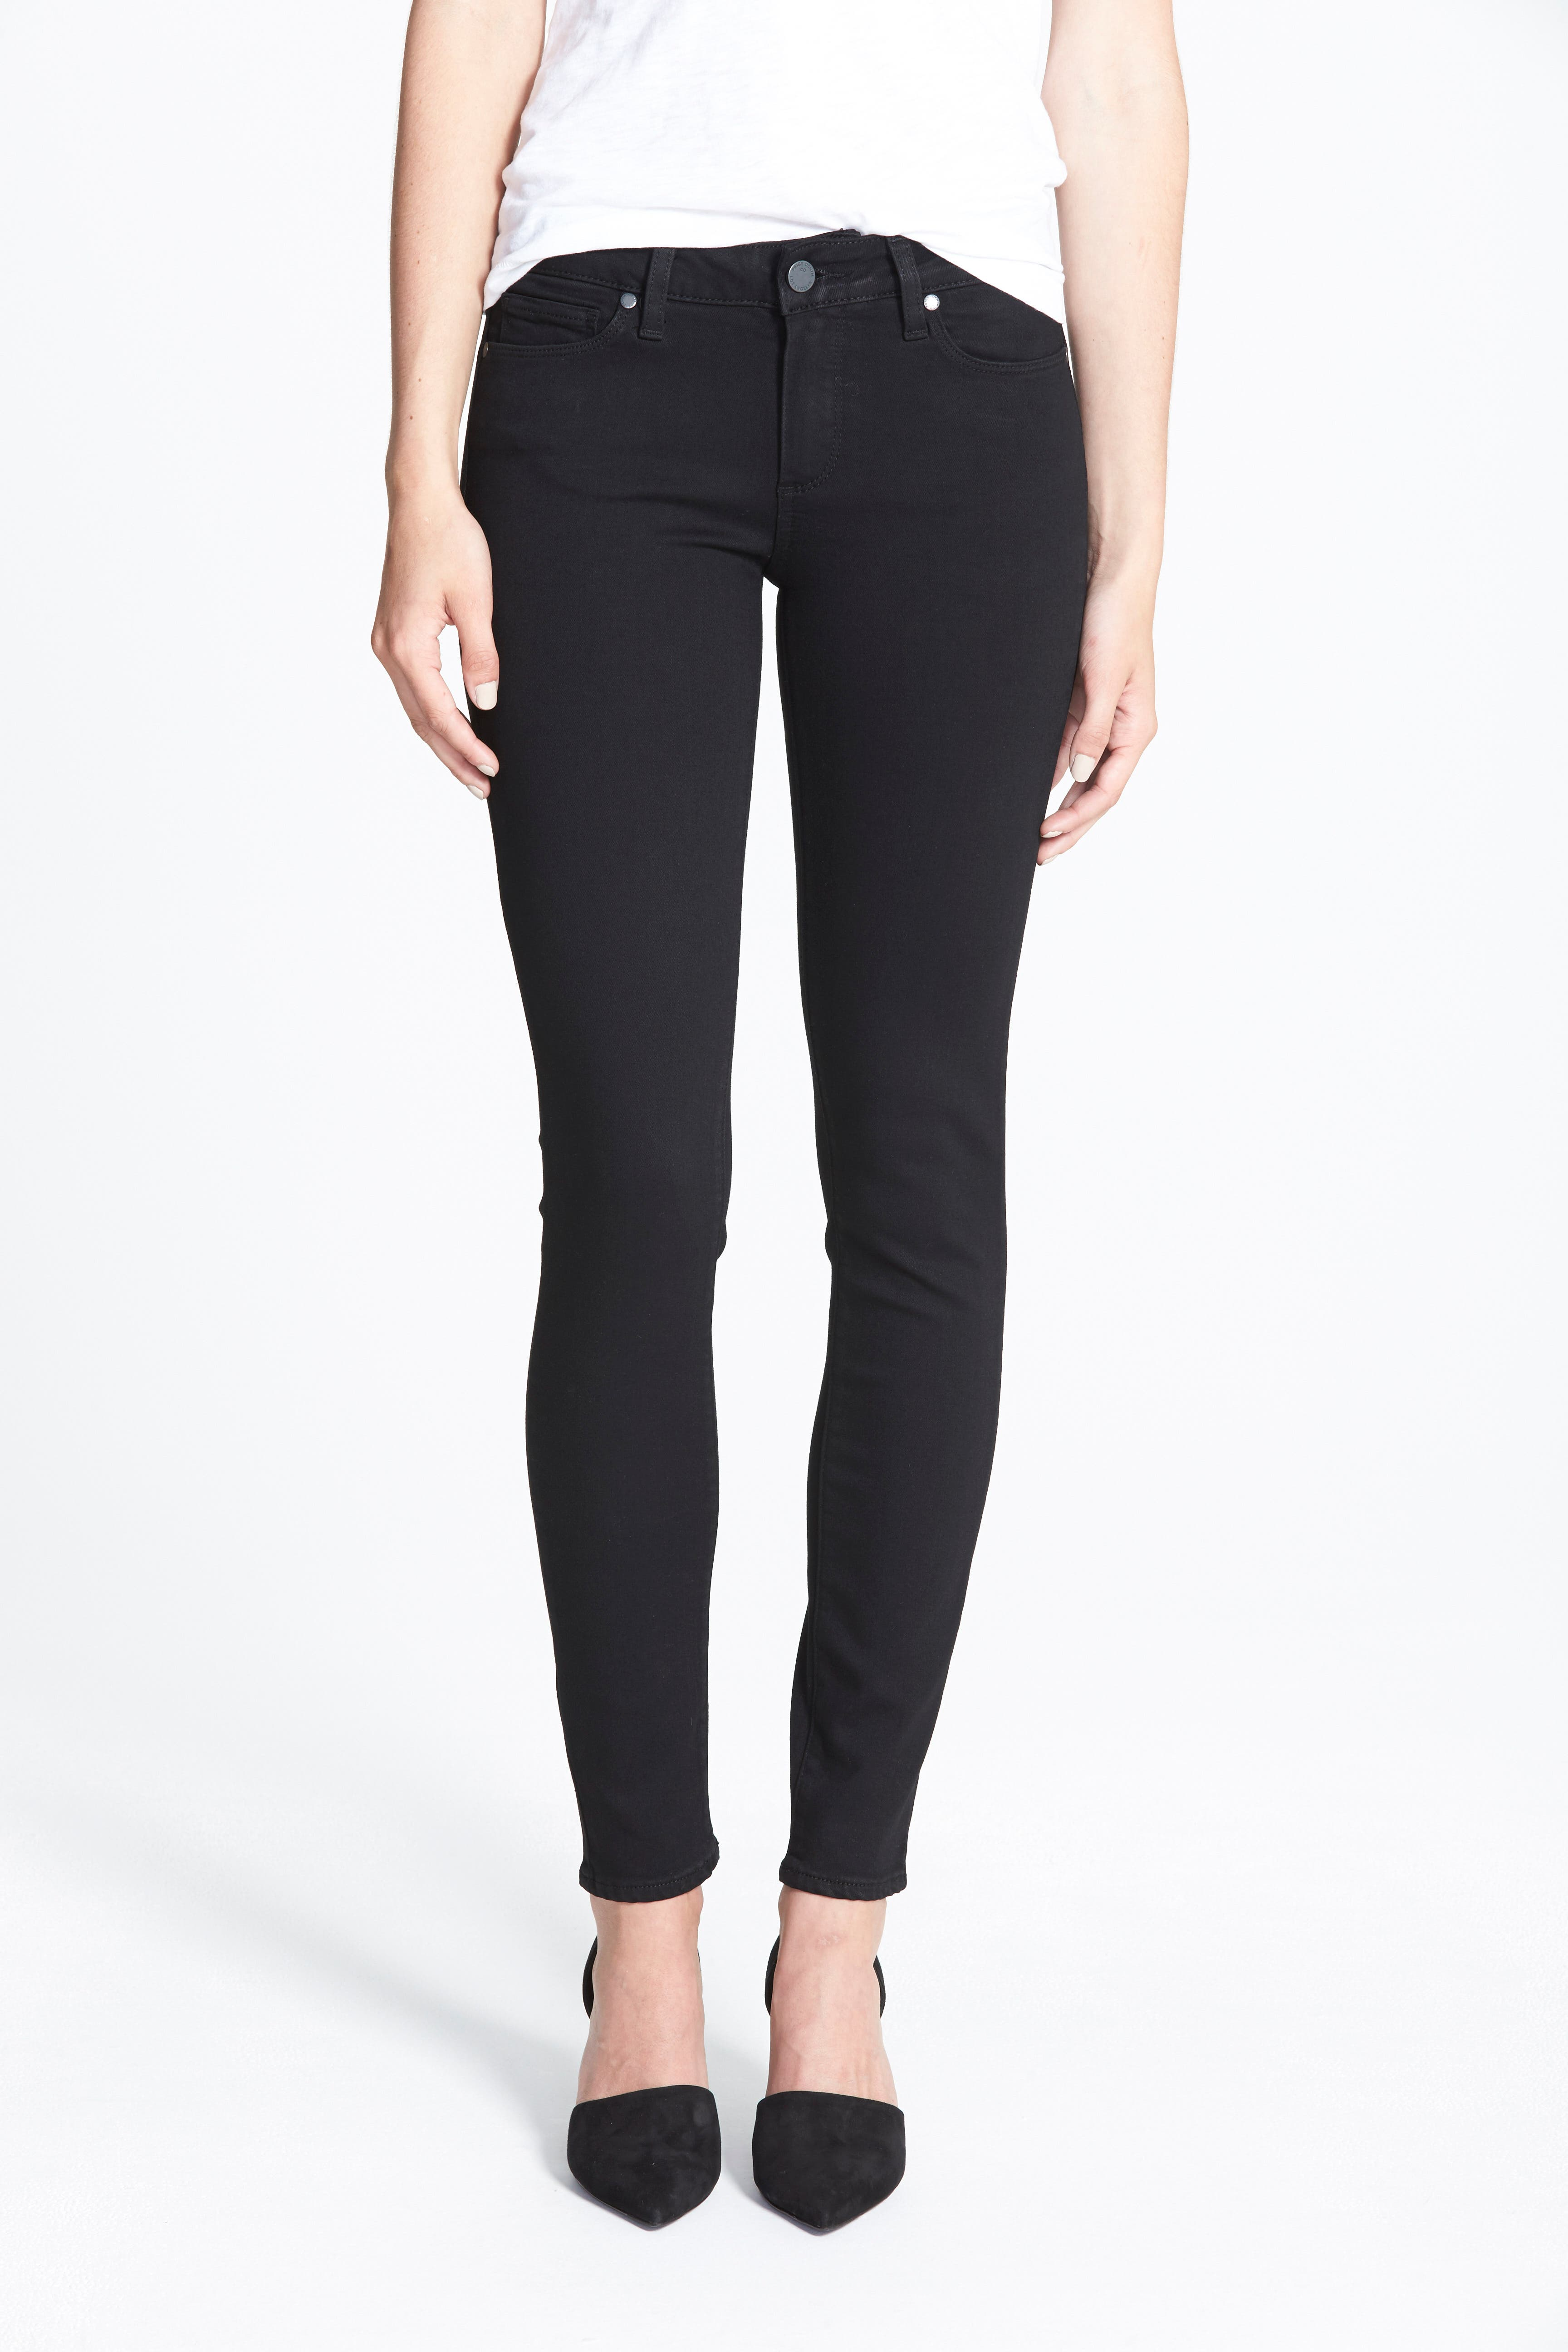 Transcend - Verdugo Ultra Skinny Jeans,                         Main,                         color, BLACK SHADOW